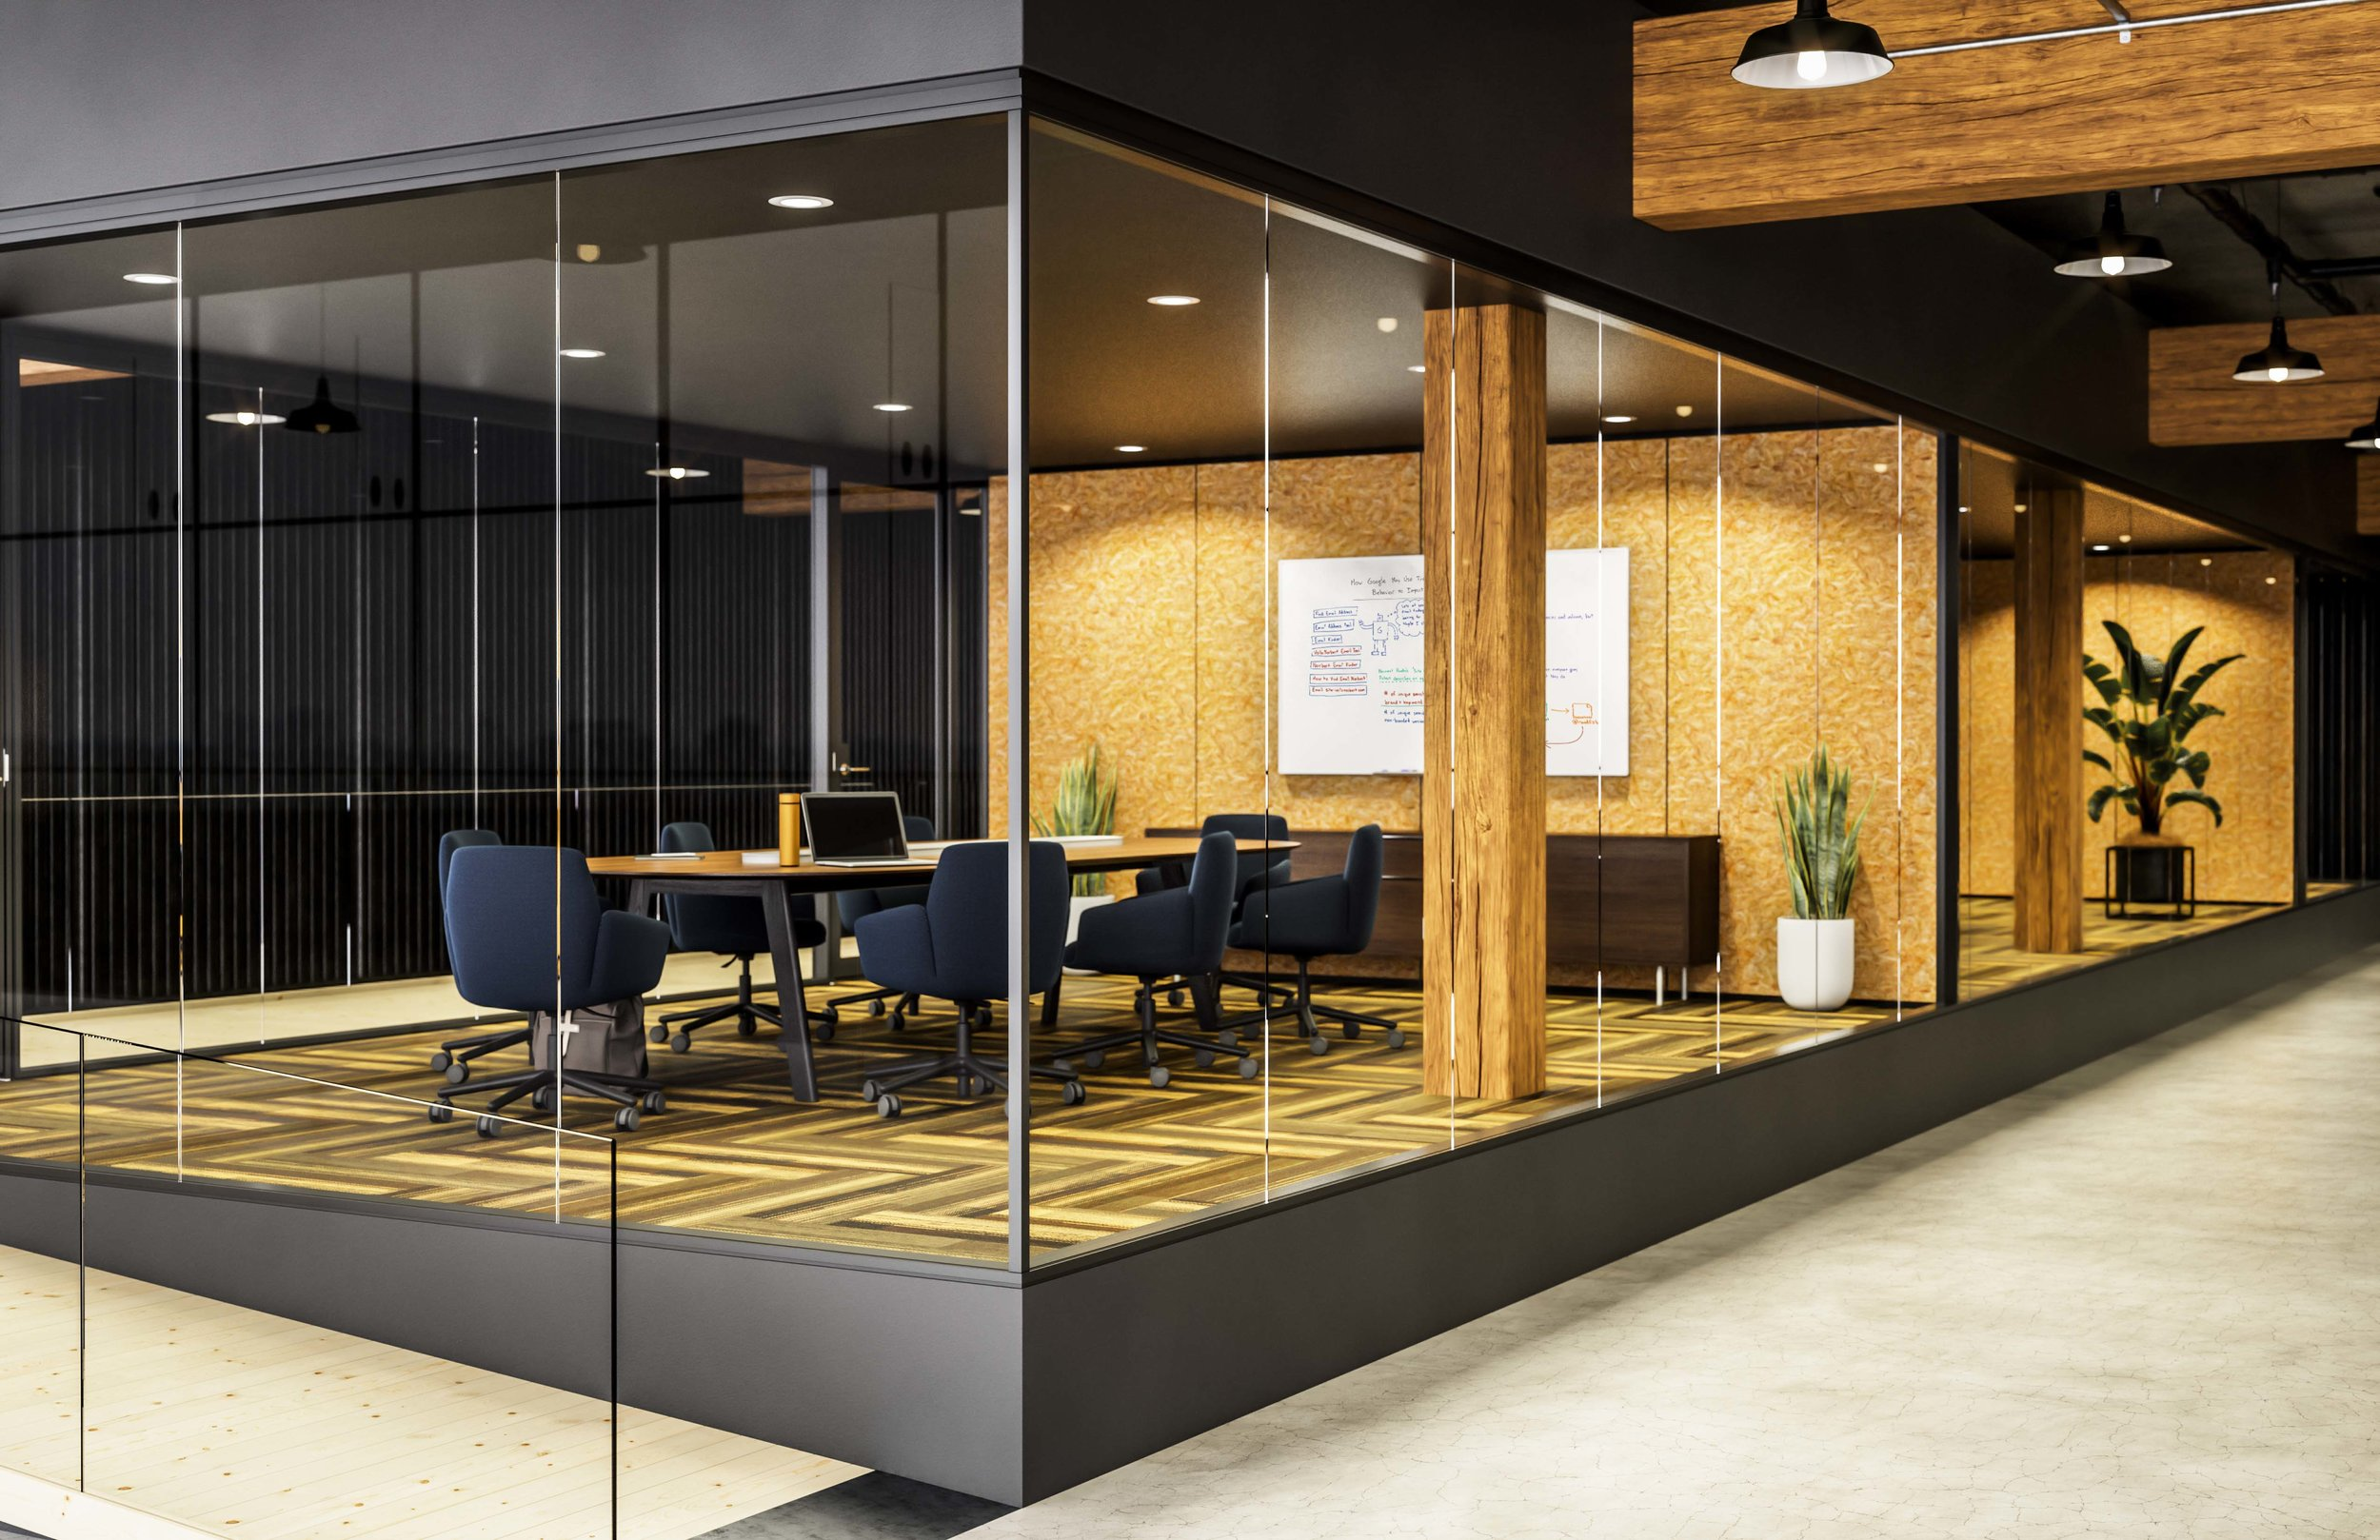 6.98913.0.Enclose Frameless Glass Haworth Moveable Walls with Poppy meeting room 2.jpg